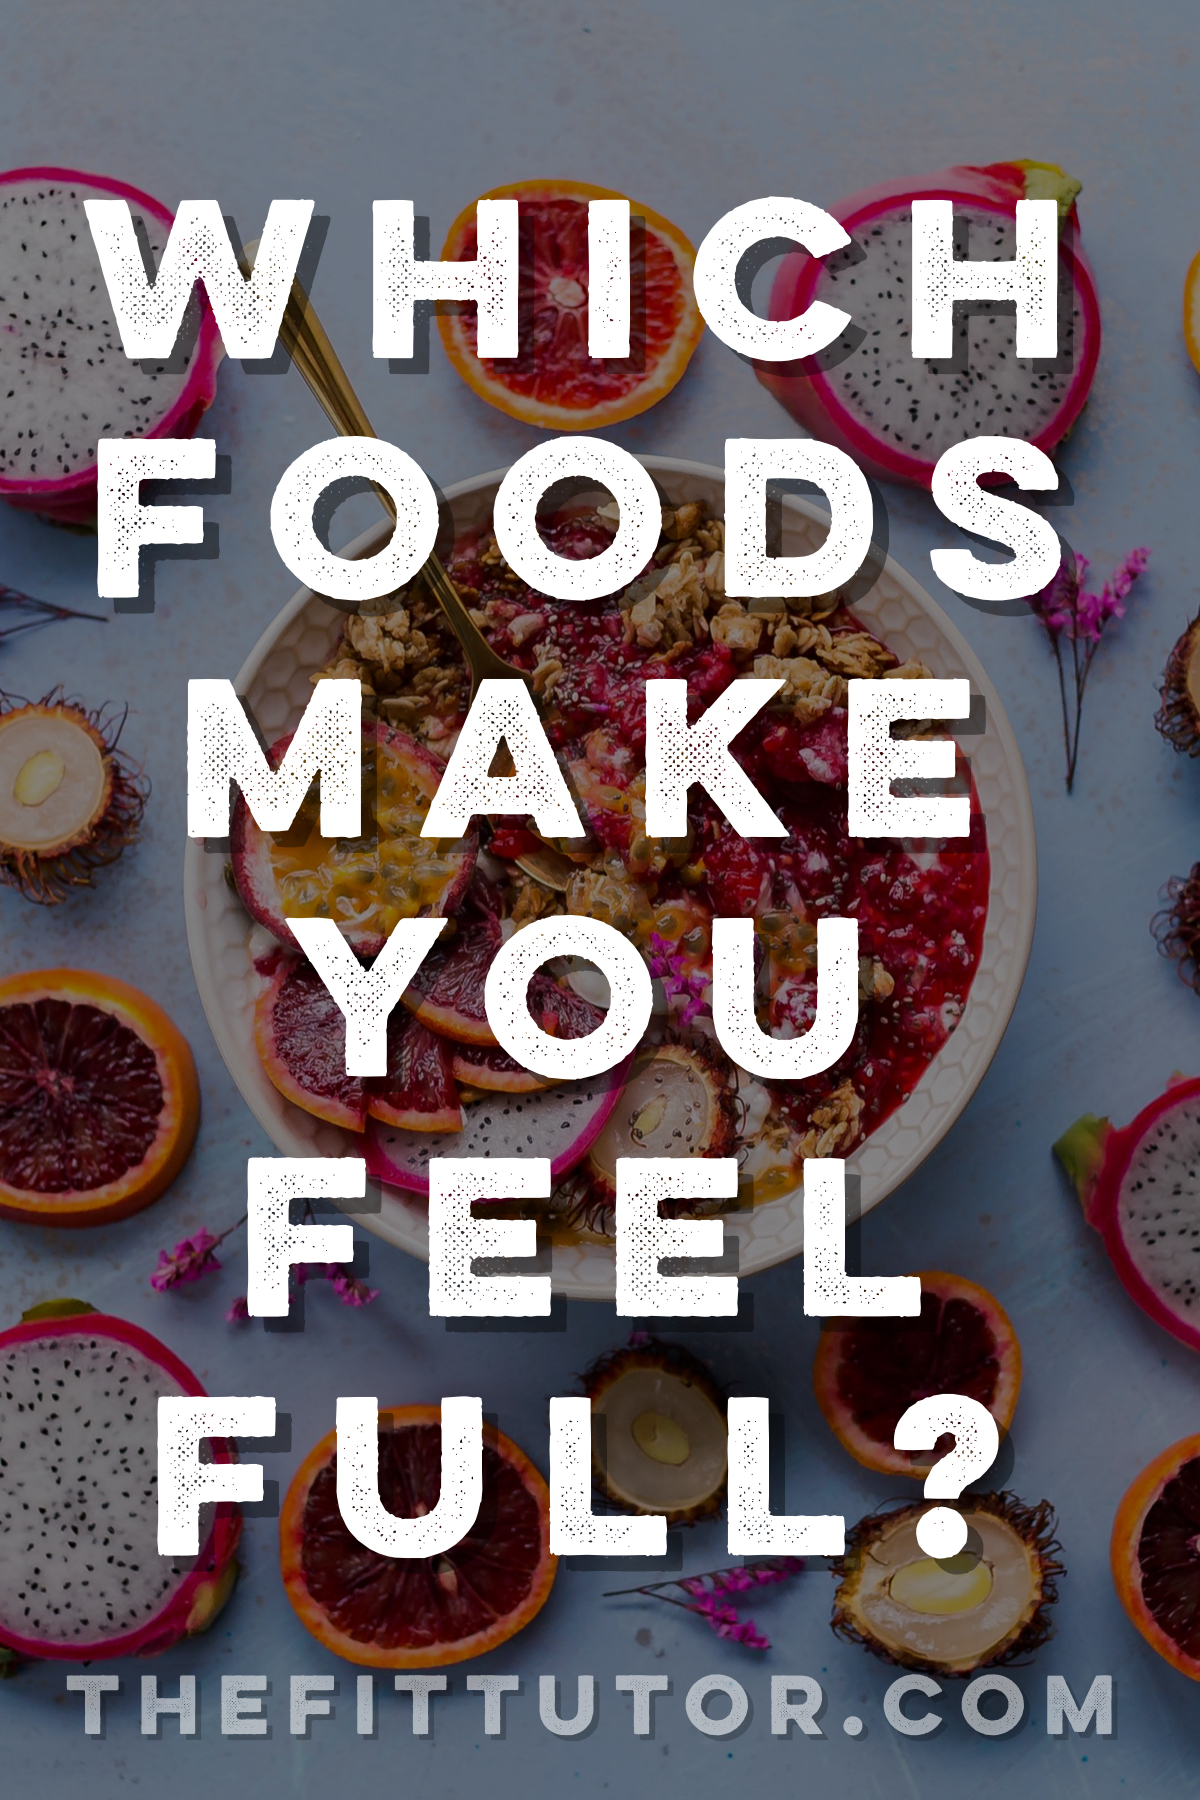 Check out this list of foods that make you feel full to help you lose weight and not be miserable in the process!